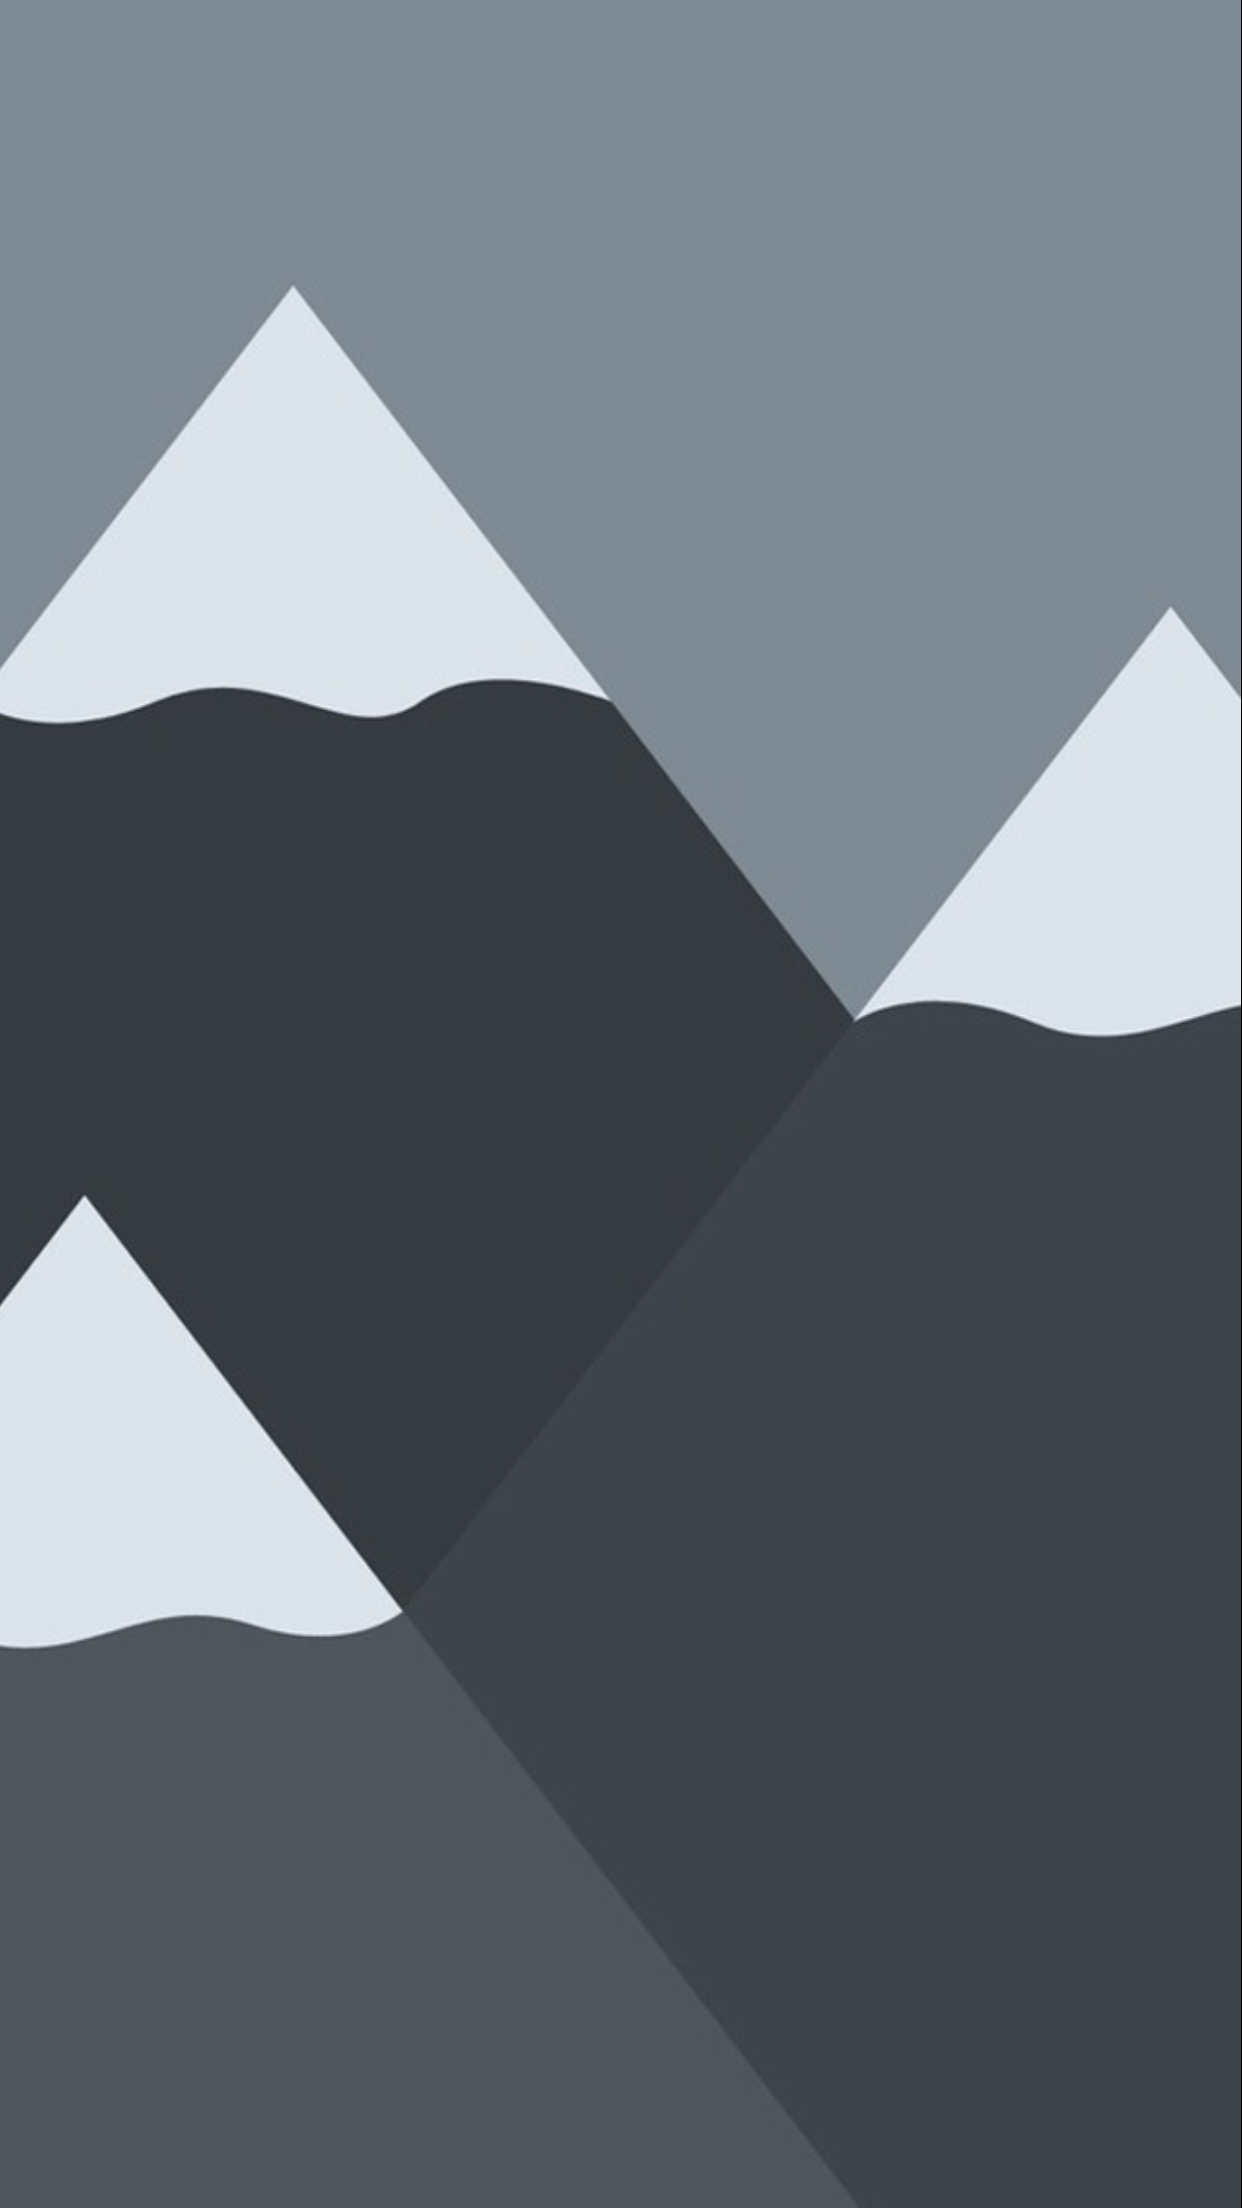 Mountains Minimalist Wallpaper for iPhone X, 8, 7, 6 ...